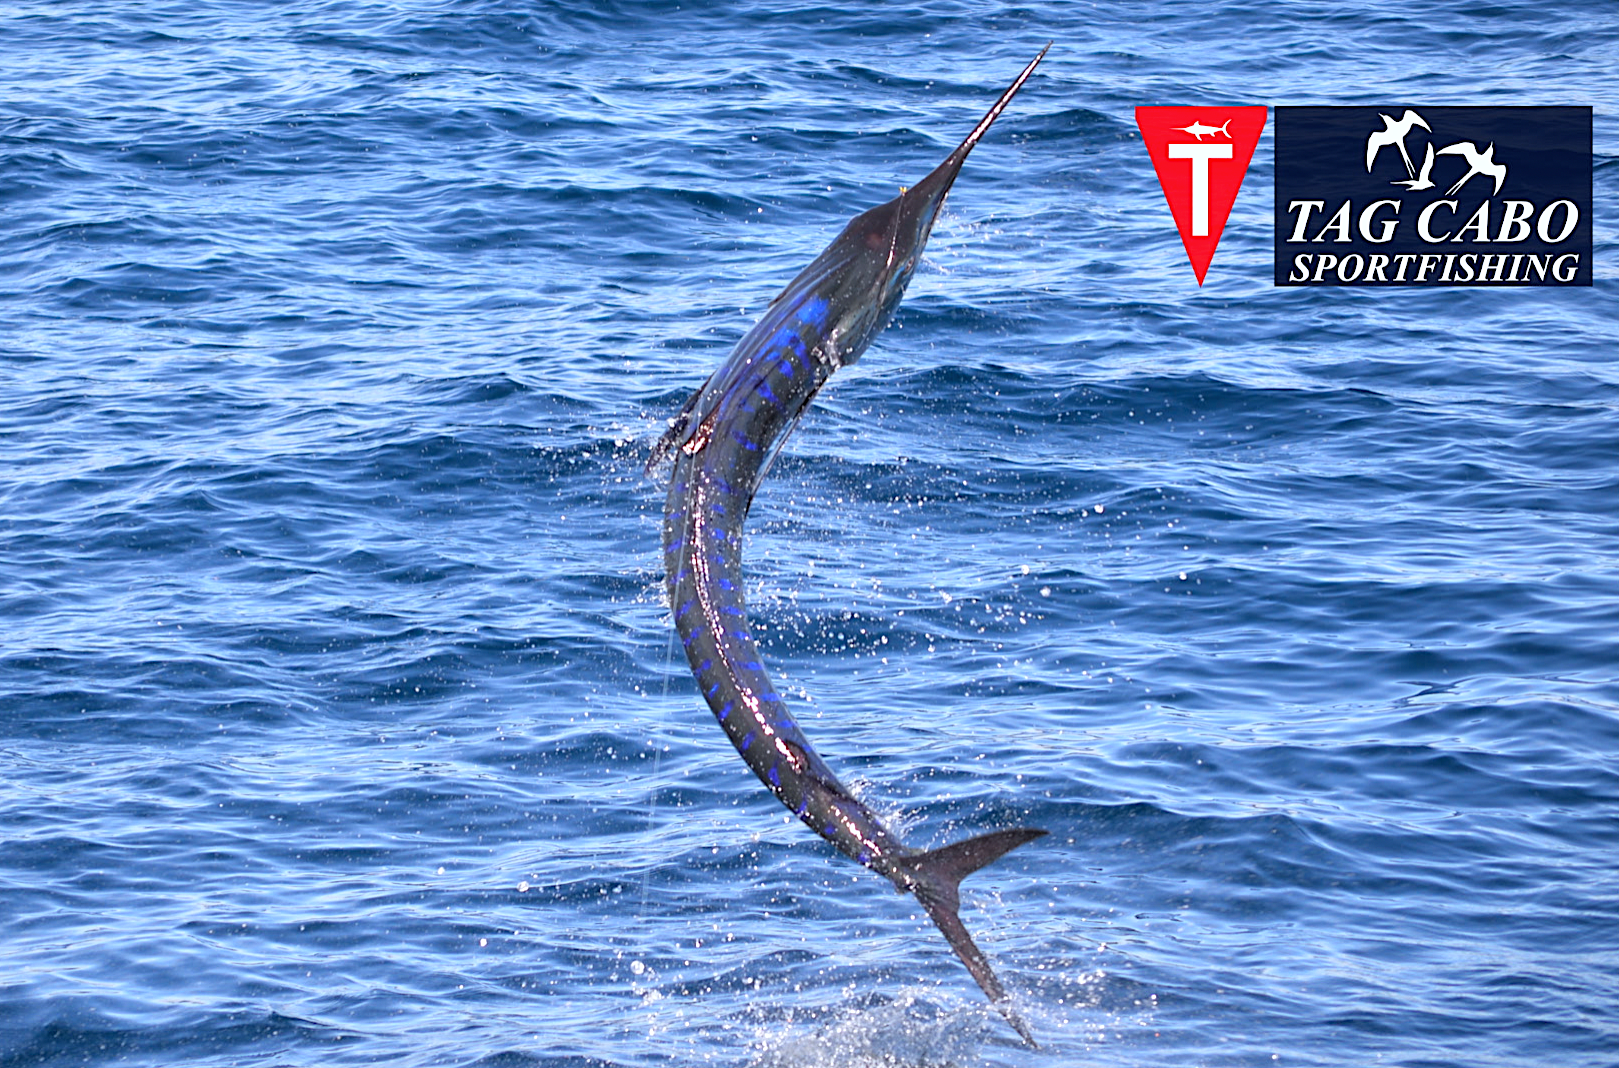 Striped marlin tag cabo sportfishing for Marlin fishing cabo